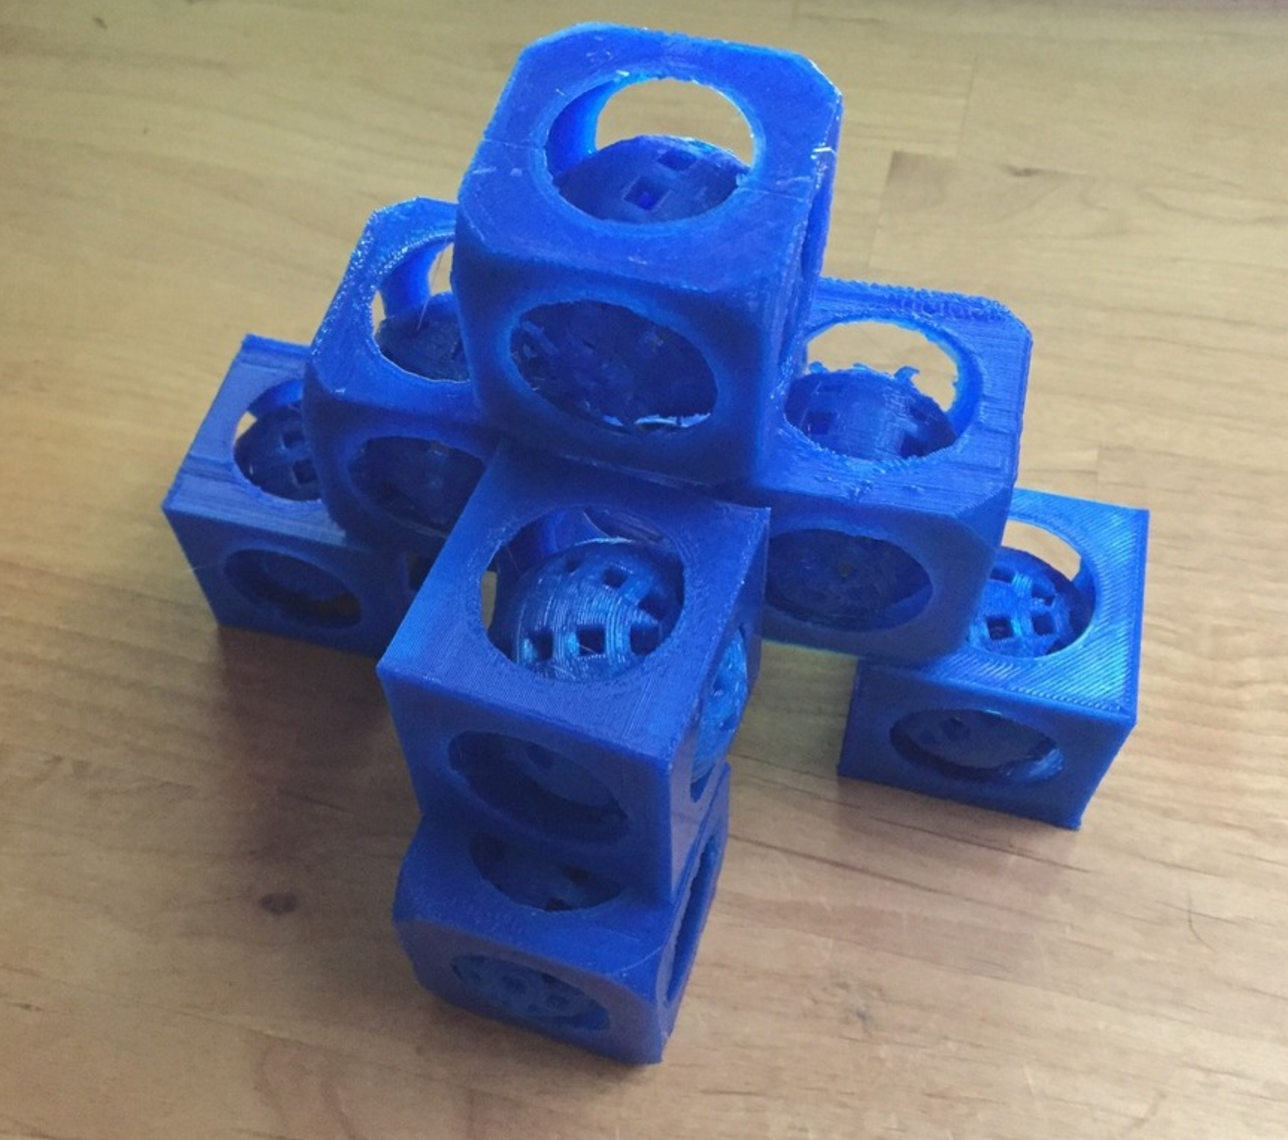 Capture d'écran 2017-05-09 à 17.42.51.png Download free STL file Present: movable ball in a cube made with tinkercad with tutorial • 3D printable model, squiqui